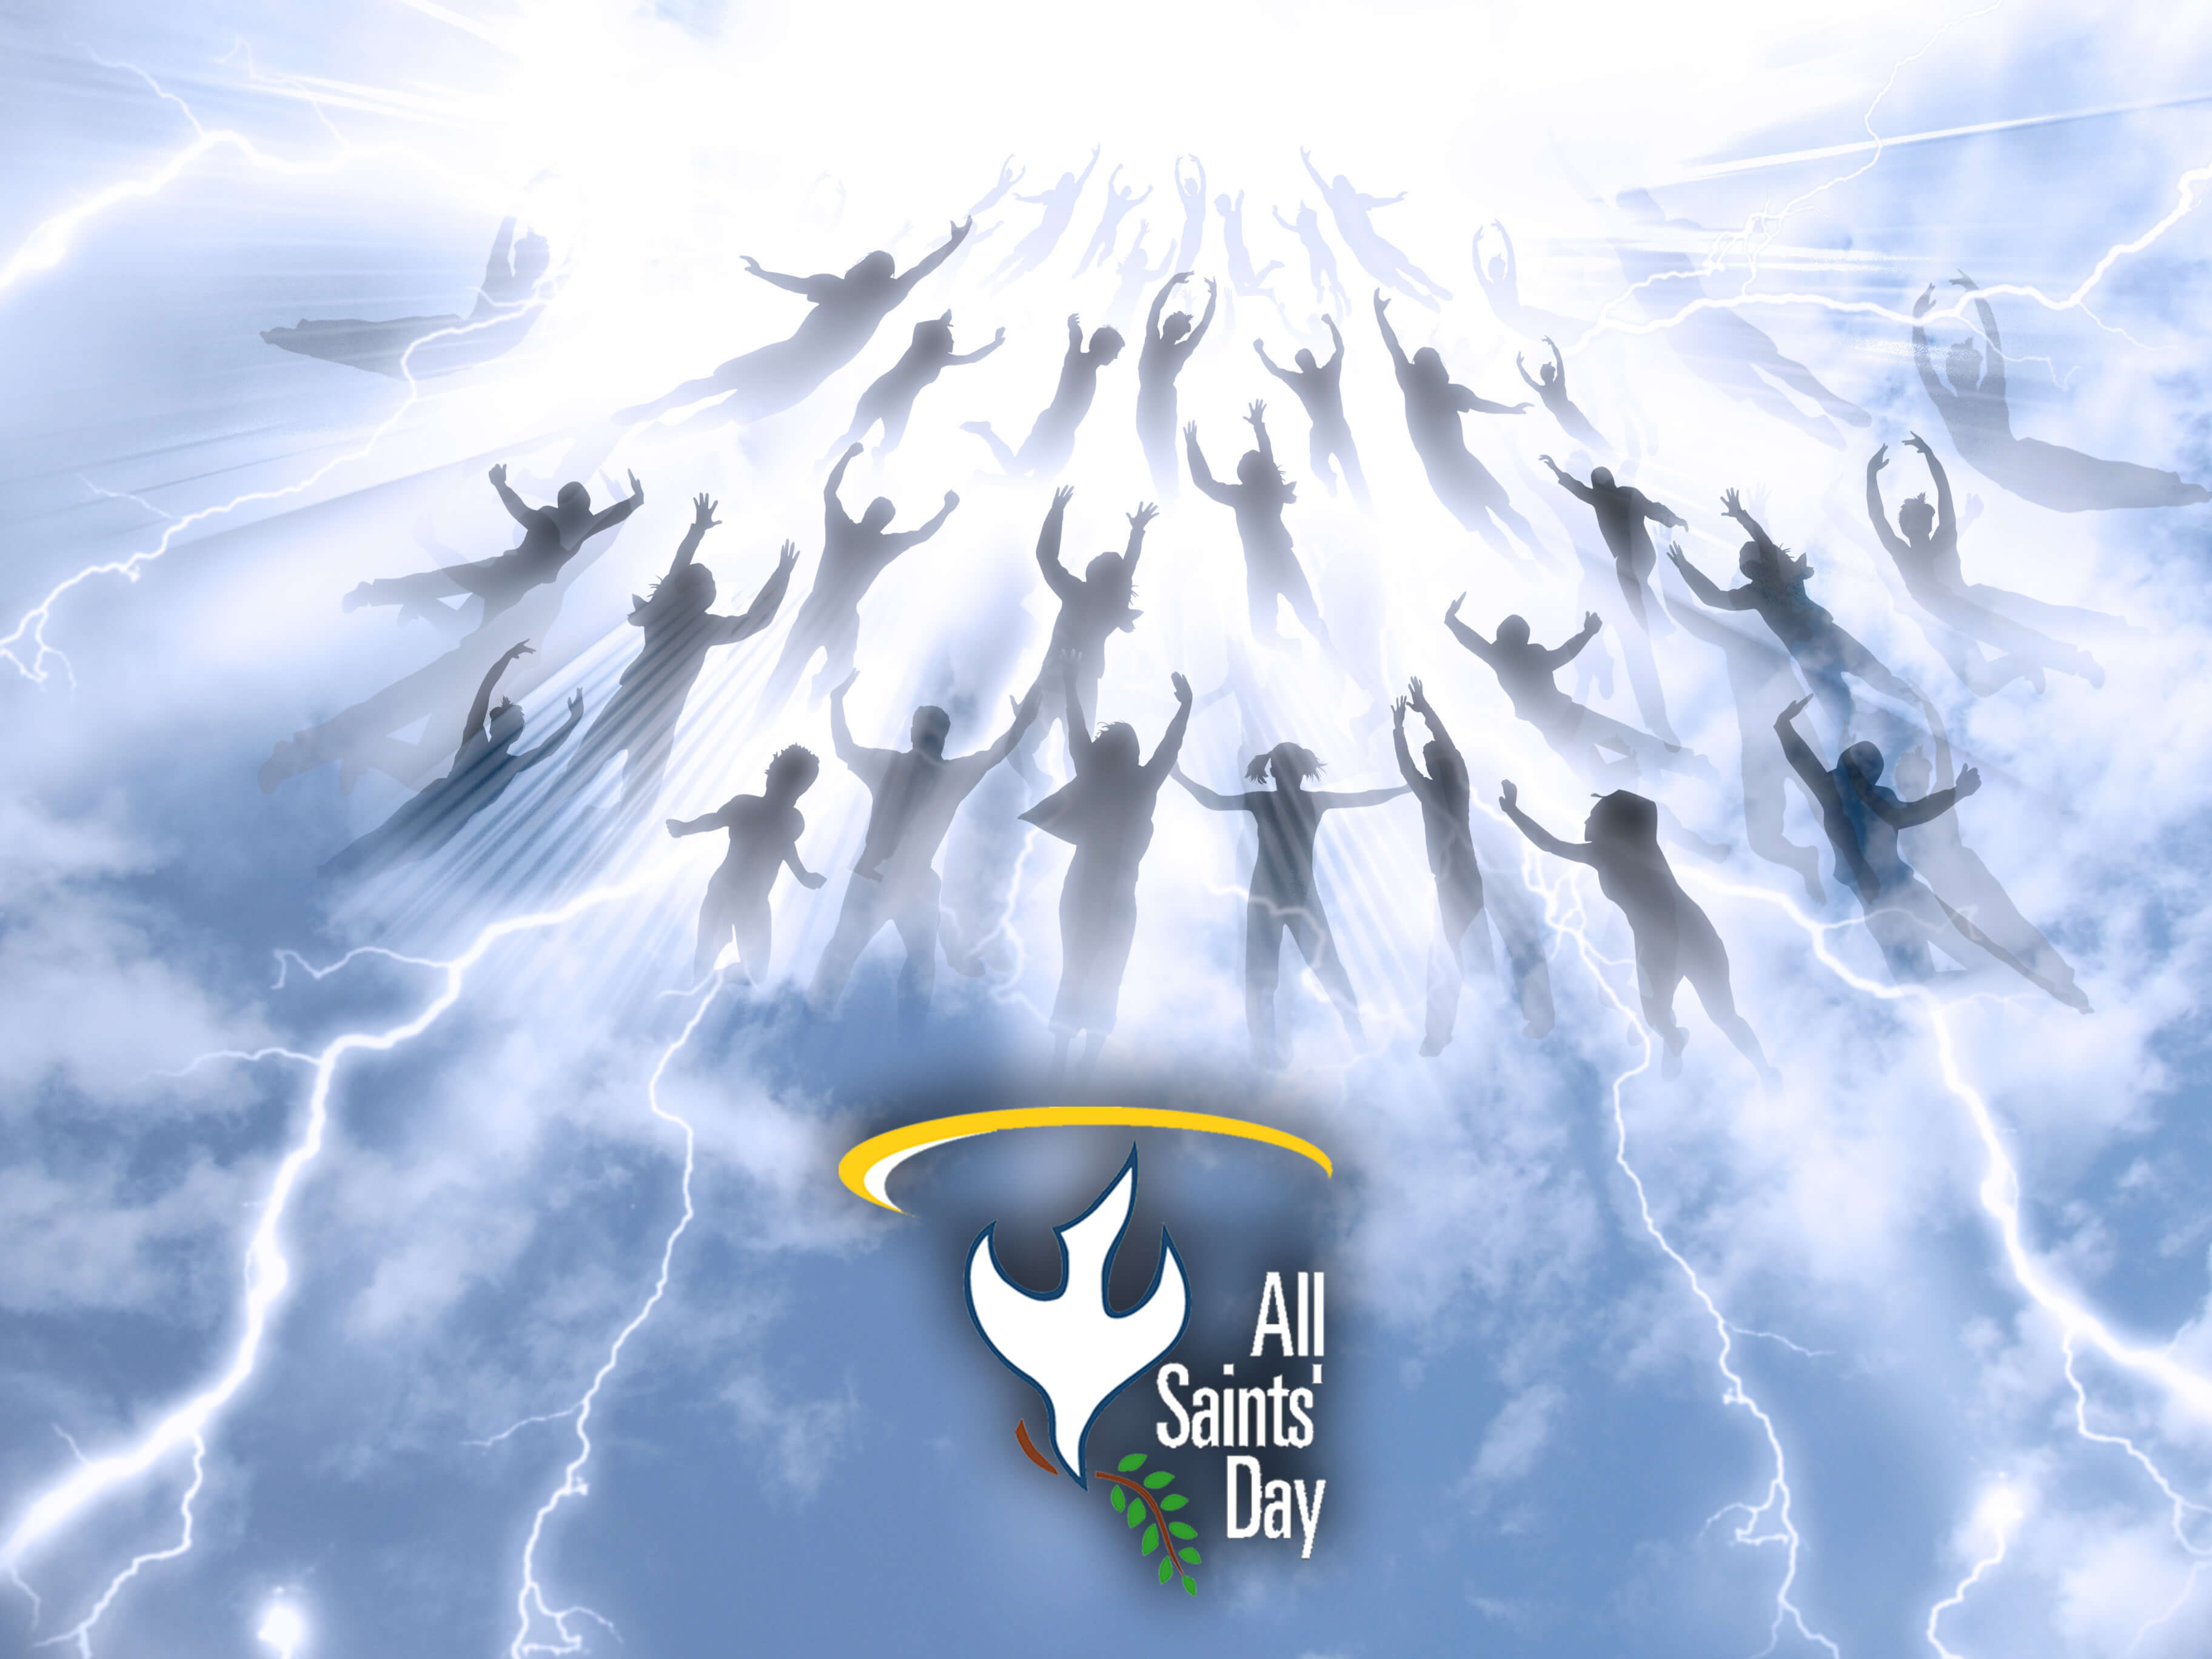 all saints day souls resurrection hd image